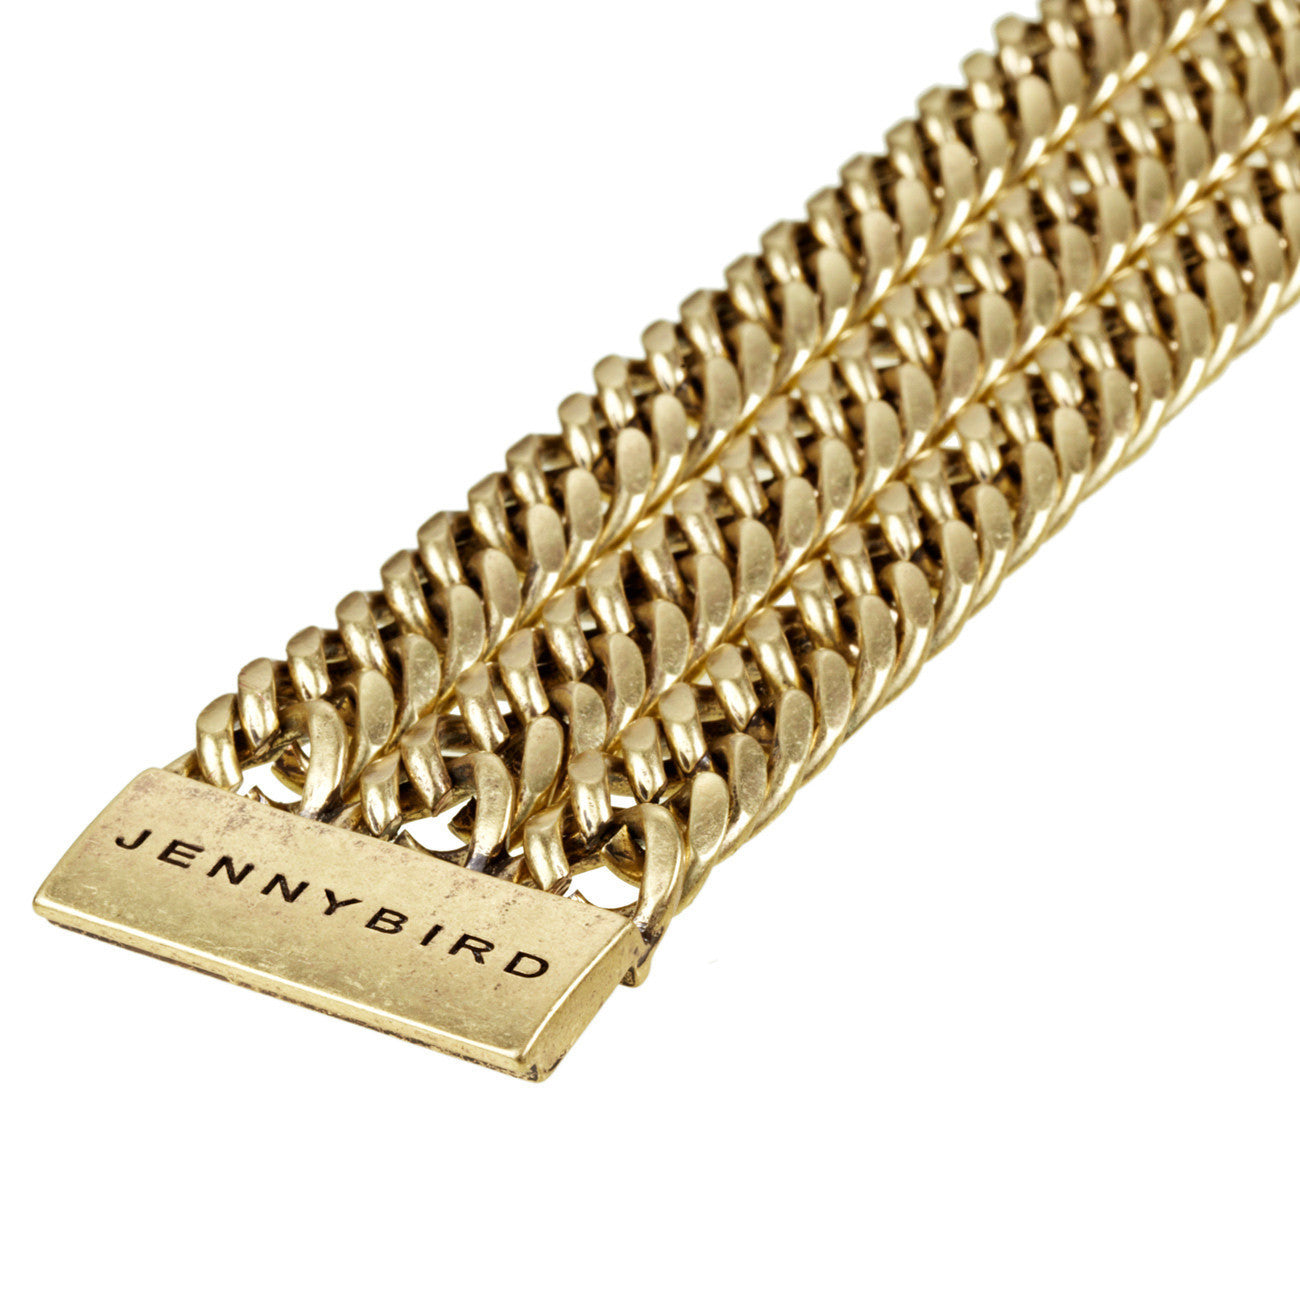 Always Hustlin' Bracelet in Gold by Jenny Bird